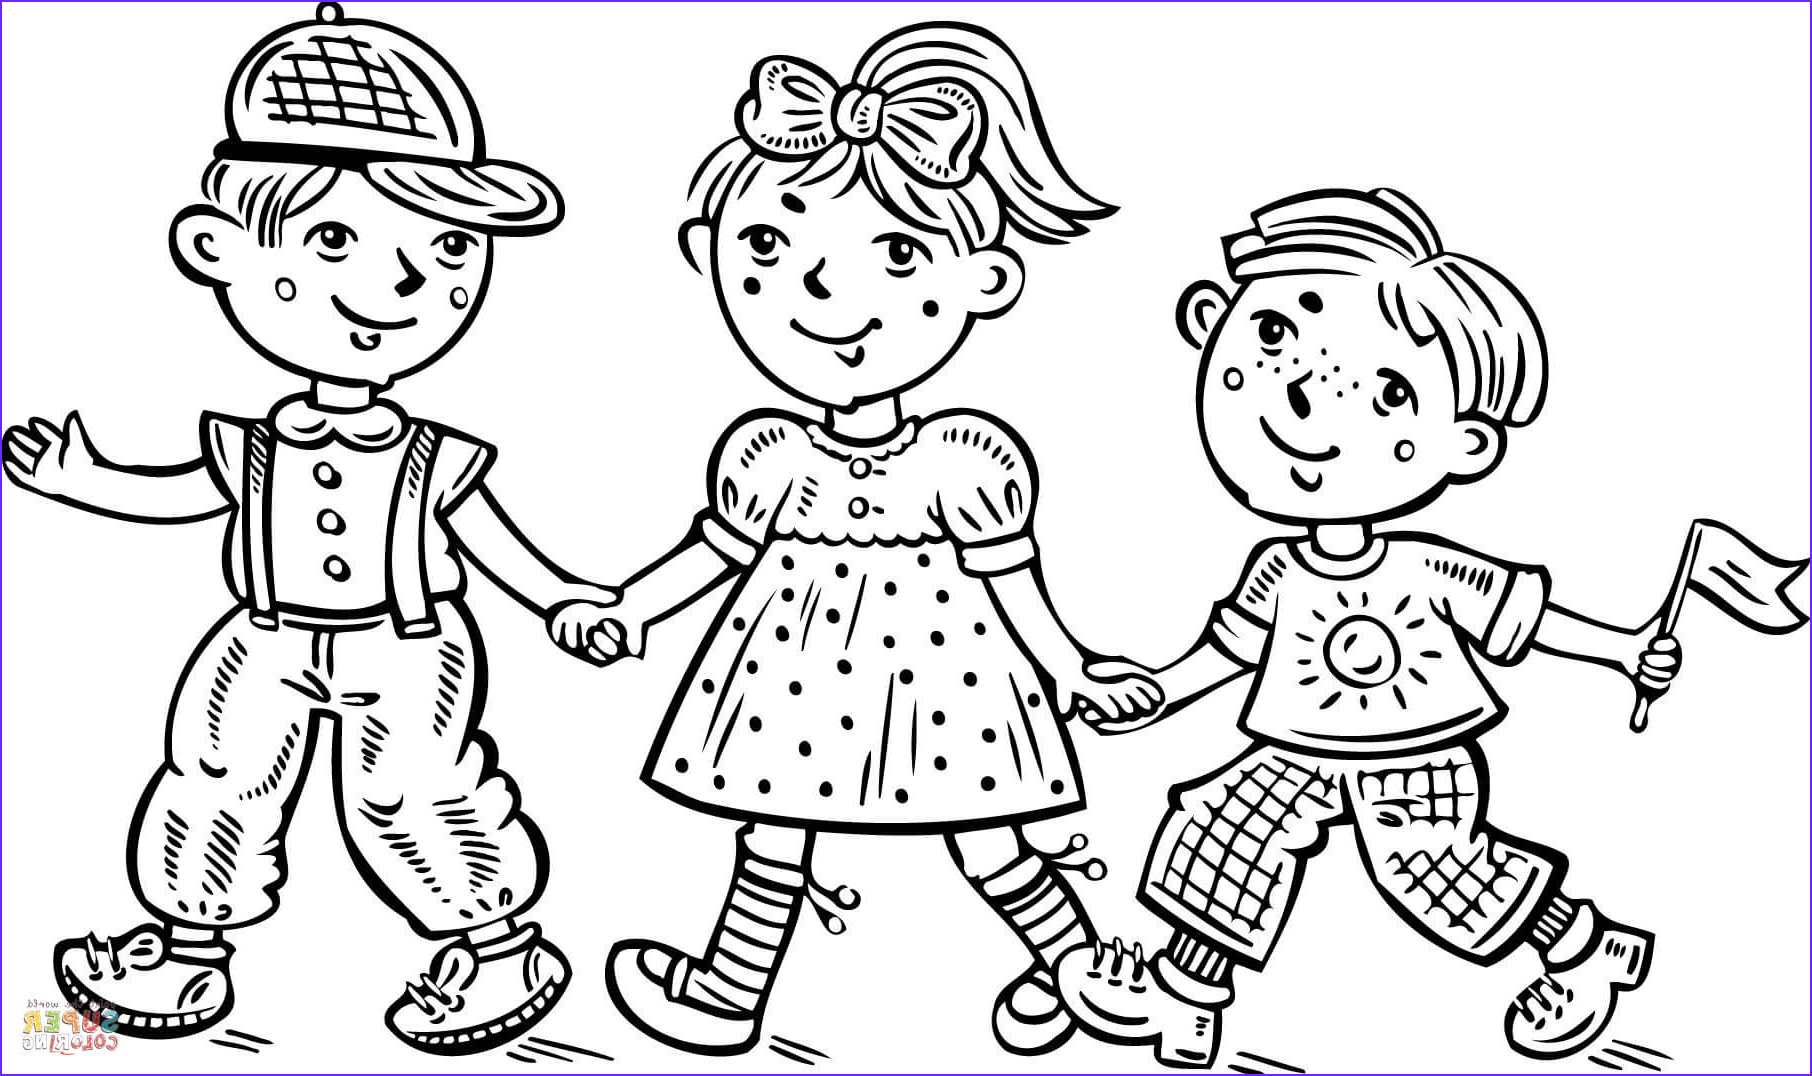 Boys Coloring Pages Best Of Photos Girl And Boy Coloring Page Az Coloring Pages